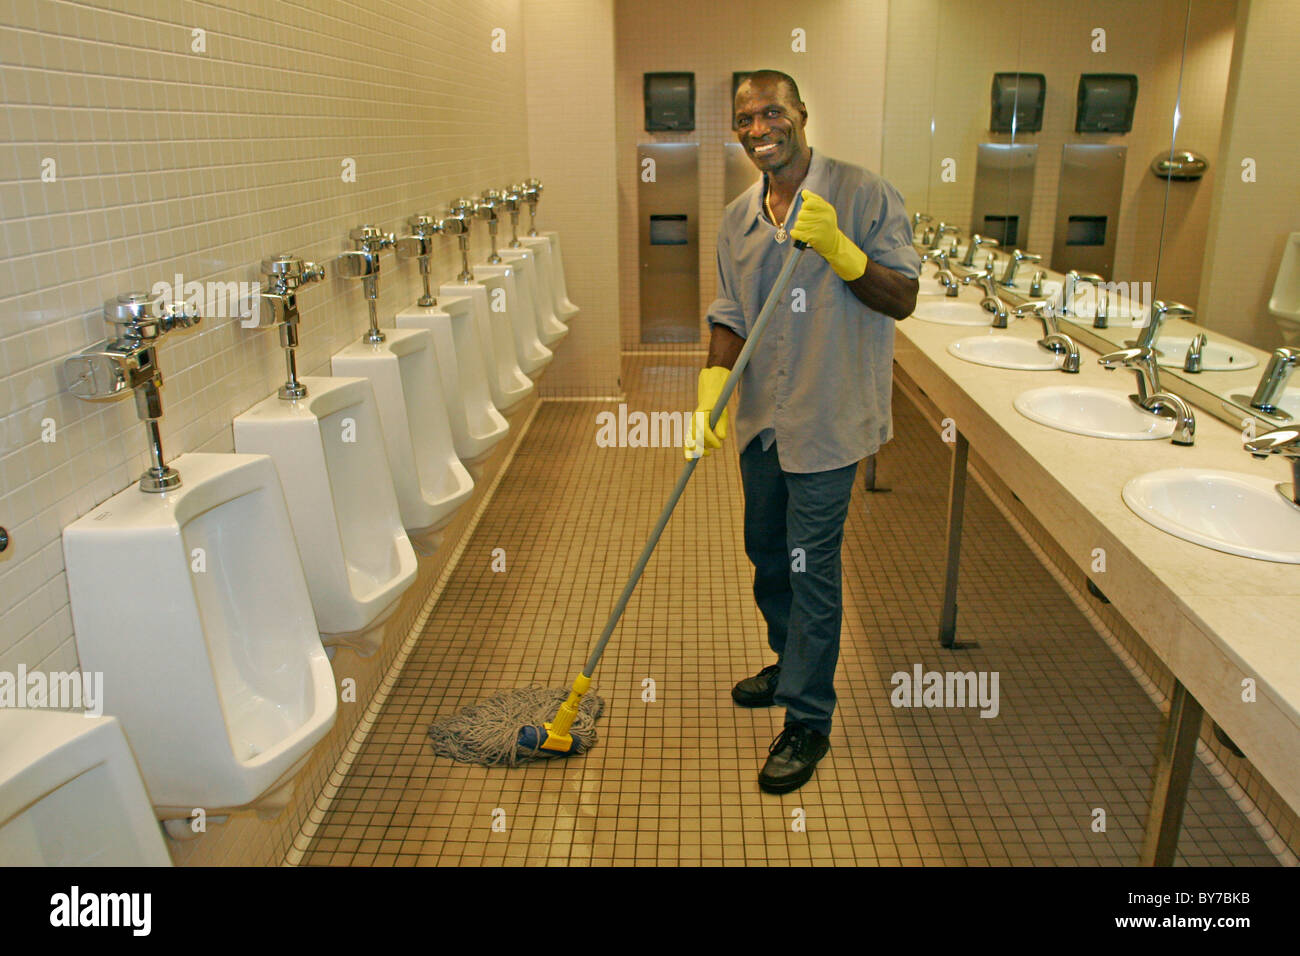 Janitor cleaning mens room stock photo 33968911 alamy for Bathroom cleaning images